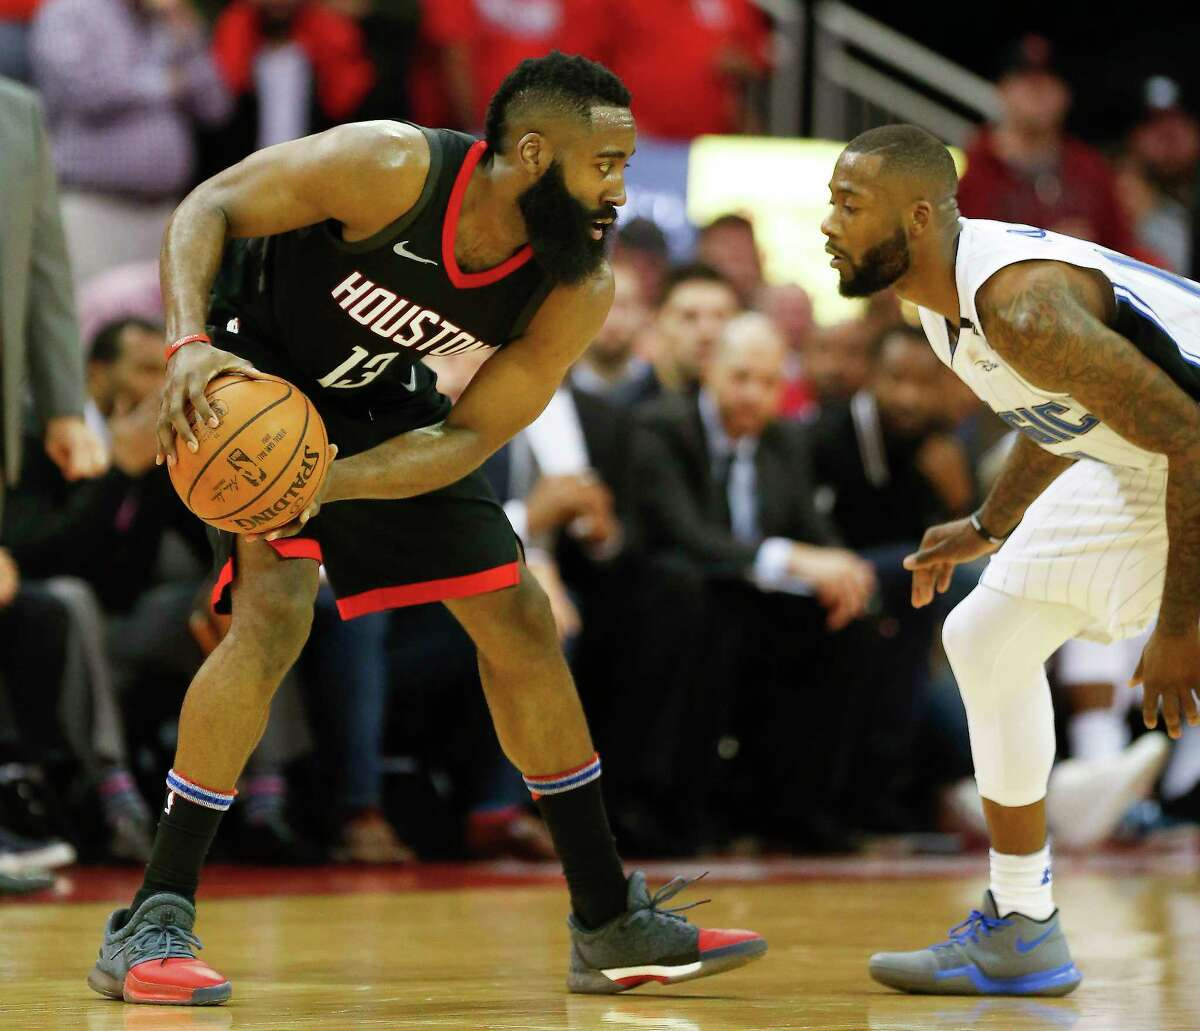 TOP CANDIDATES FOR THE NBA'S MVP AWARD James Harden By the numbers: 31.5 ppg, 5rpg 9.1 apg, 45.1 FG %, 38.7 %. Advanced stats: 54.8 eFG %, 30.4 PER, 9.6 win shares (per basketball-reference) Argument against: Shooting percentages don't match some candidates. Argument for: Carried a team with a glut of injuries to the second-best record in the NBA with the planned starting lineup together for just 17 games (16 wins).